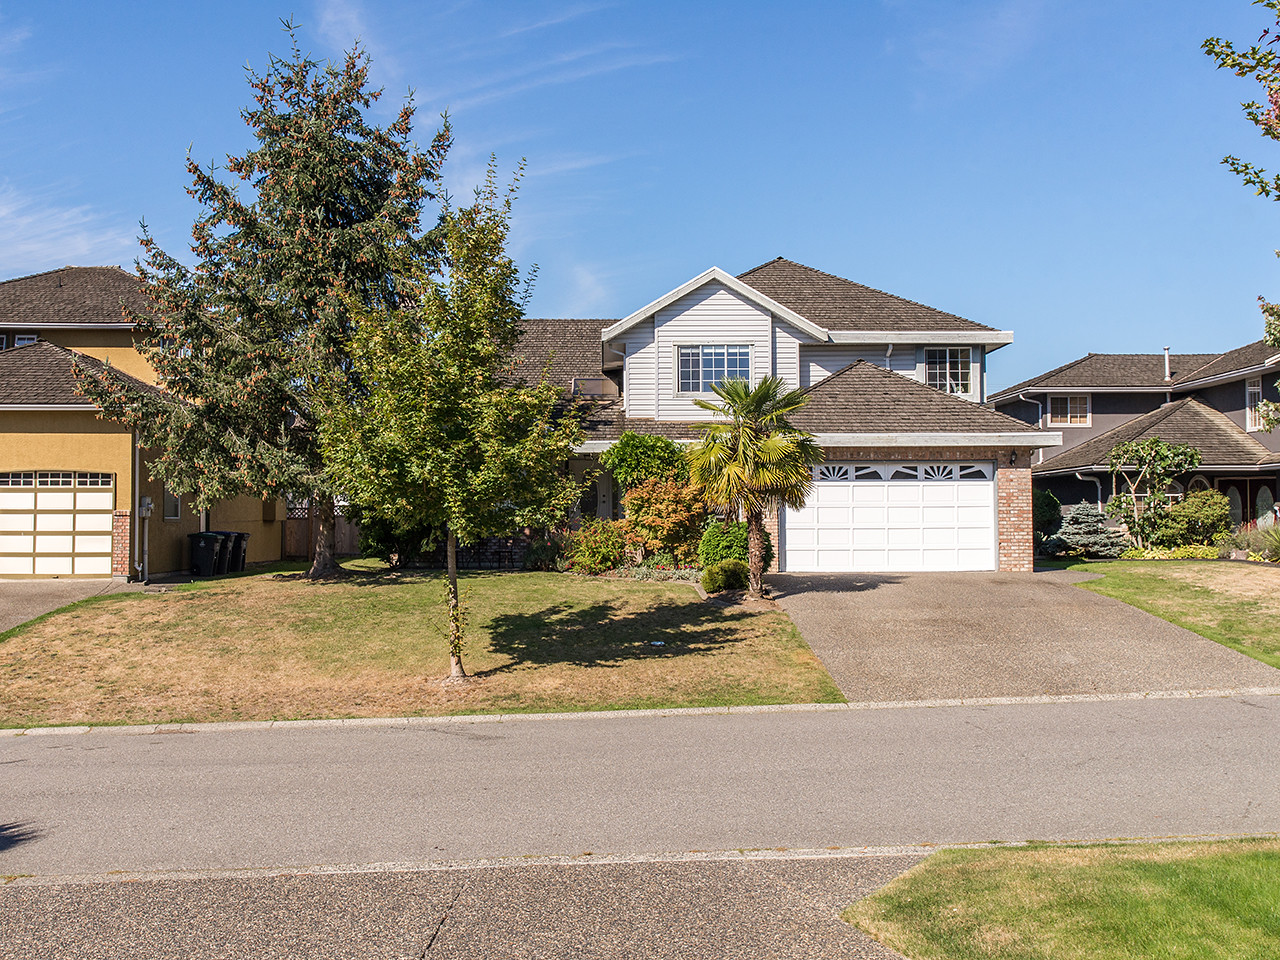 12325 63A Ave for MLS